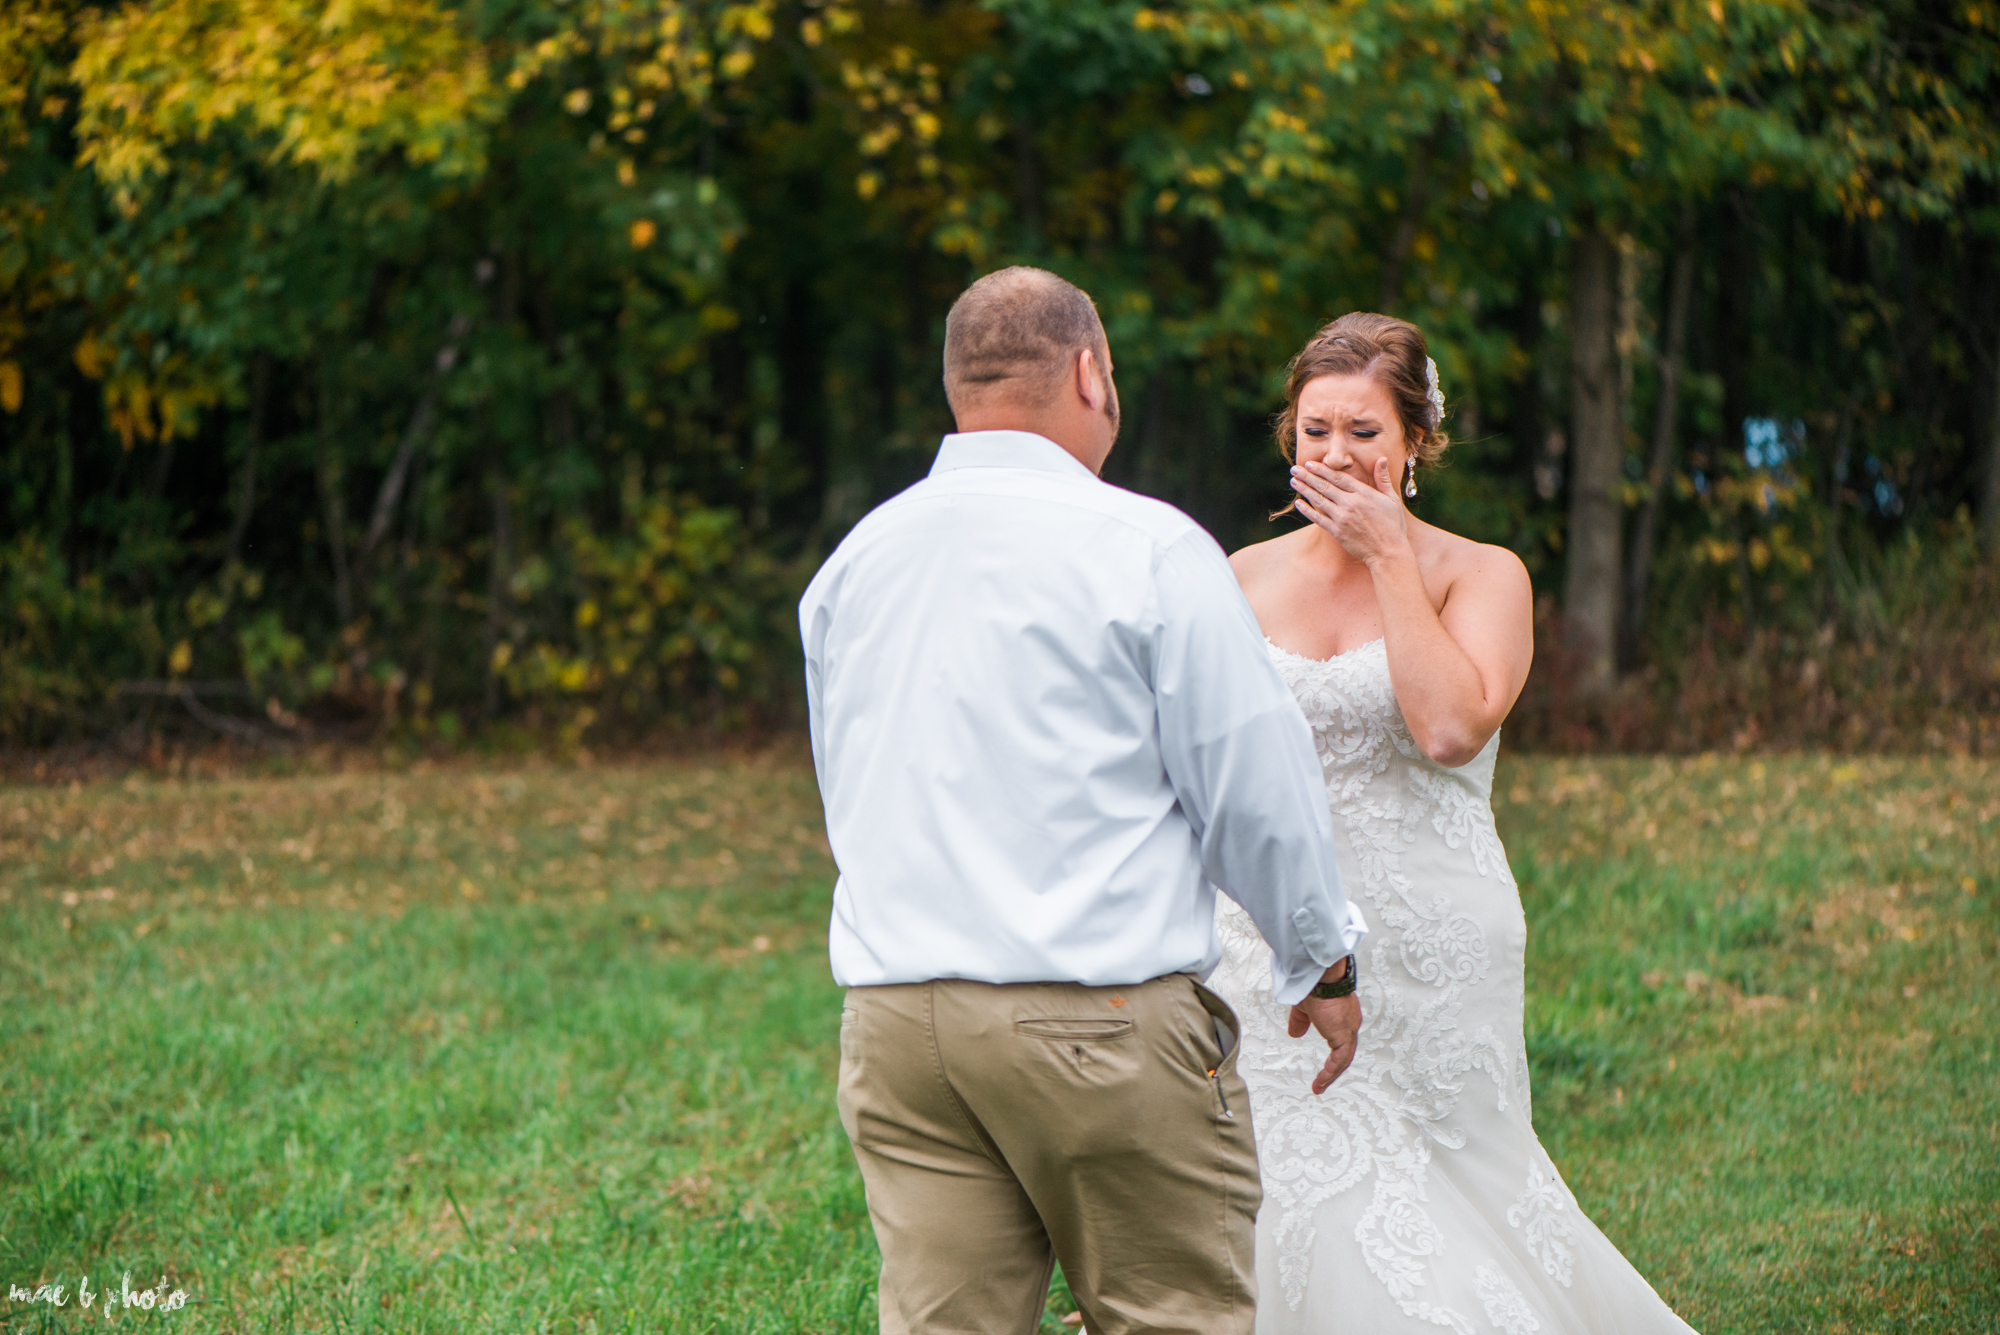 Sarah & Dustin's Intimate Fall Barn Winery Wedding at Hartford Hill Winery in Hartford, Ohio Photographed by Mae B Photo-2.jpg